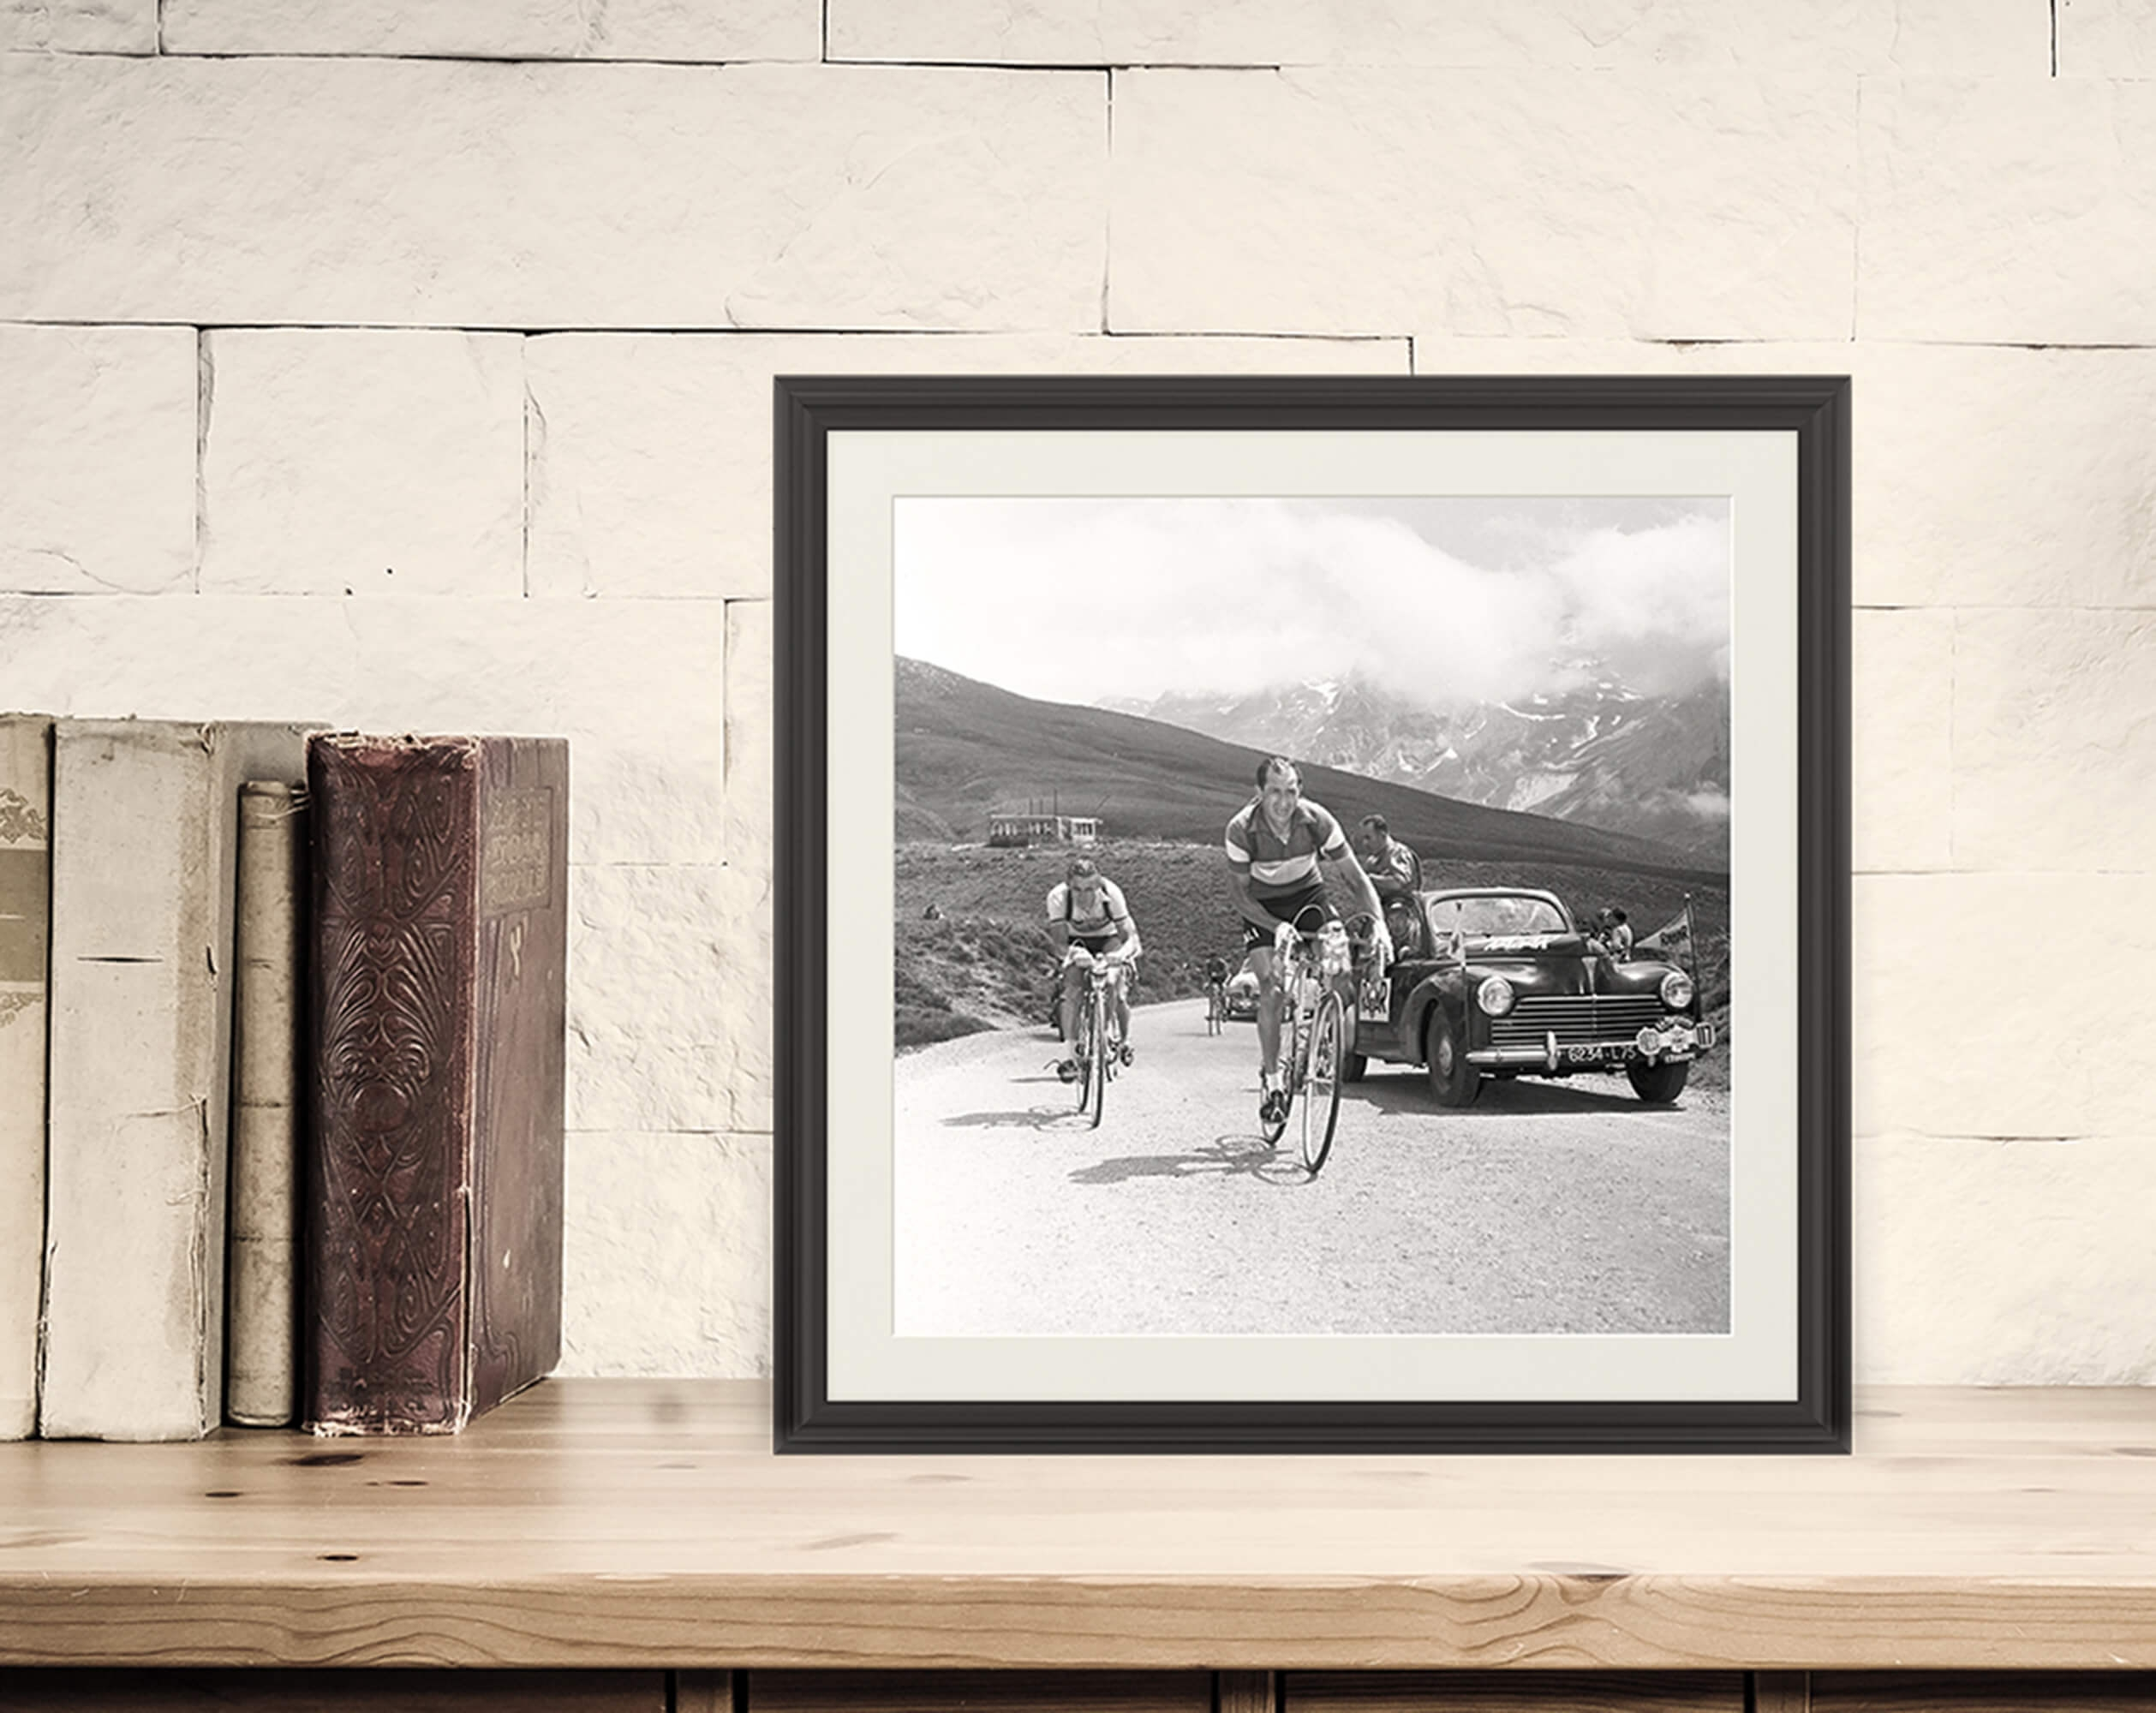 Gino Bartali al Tour de France, 1953